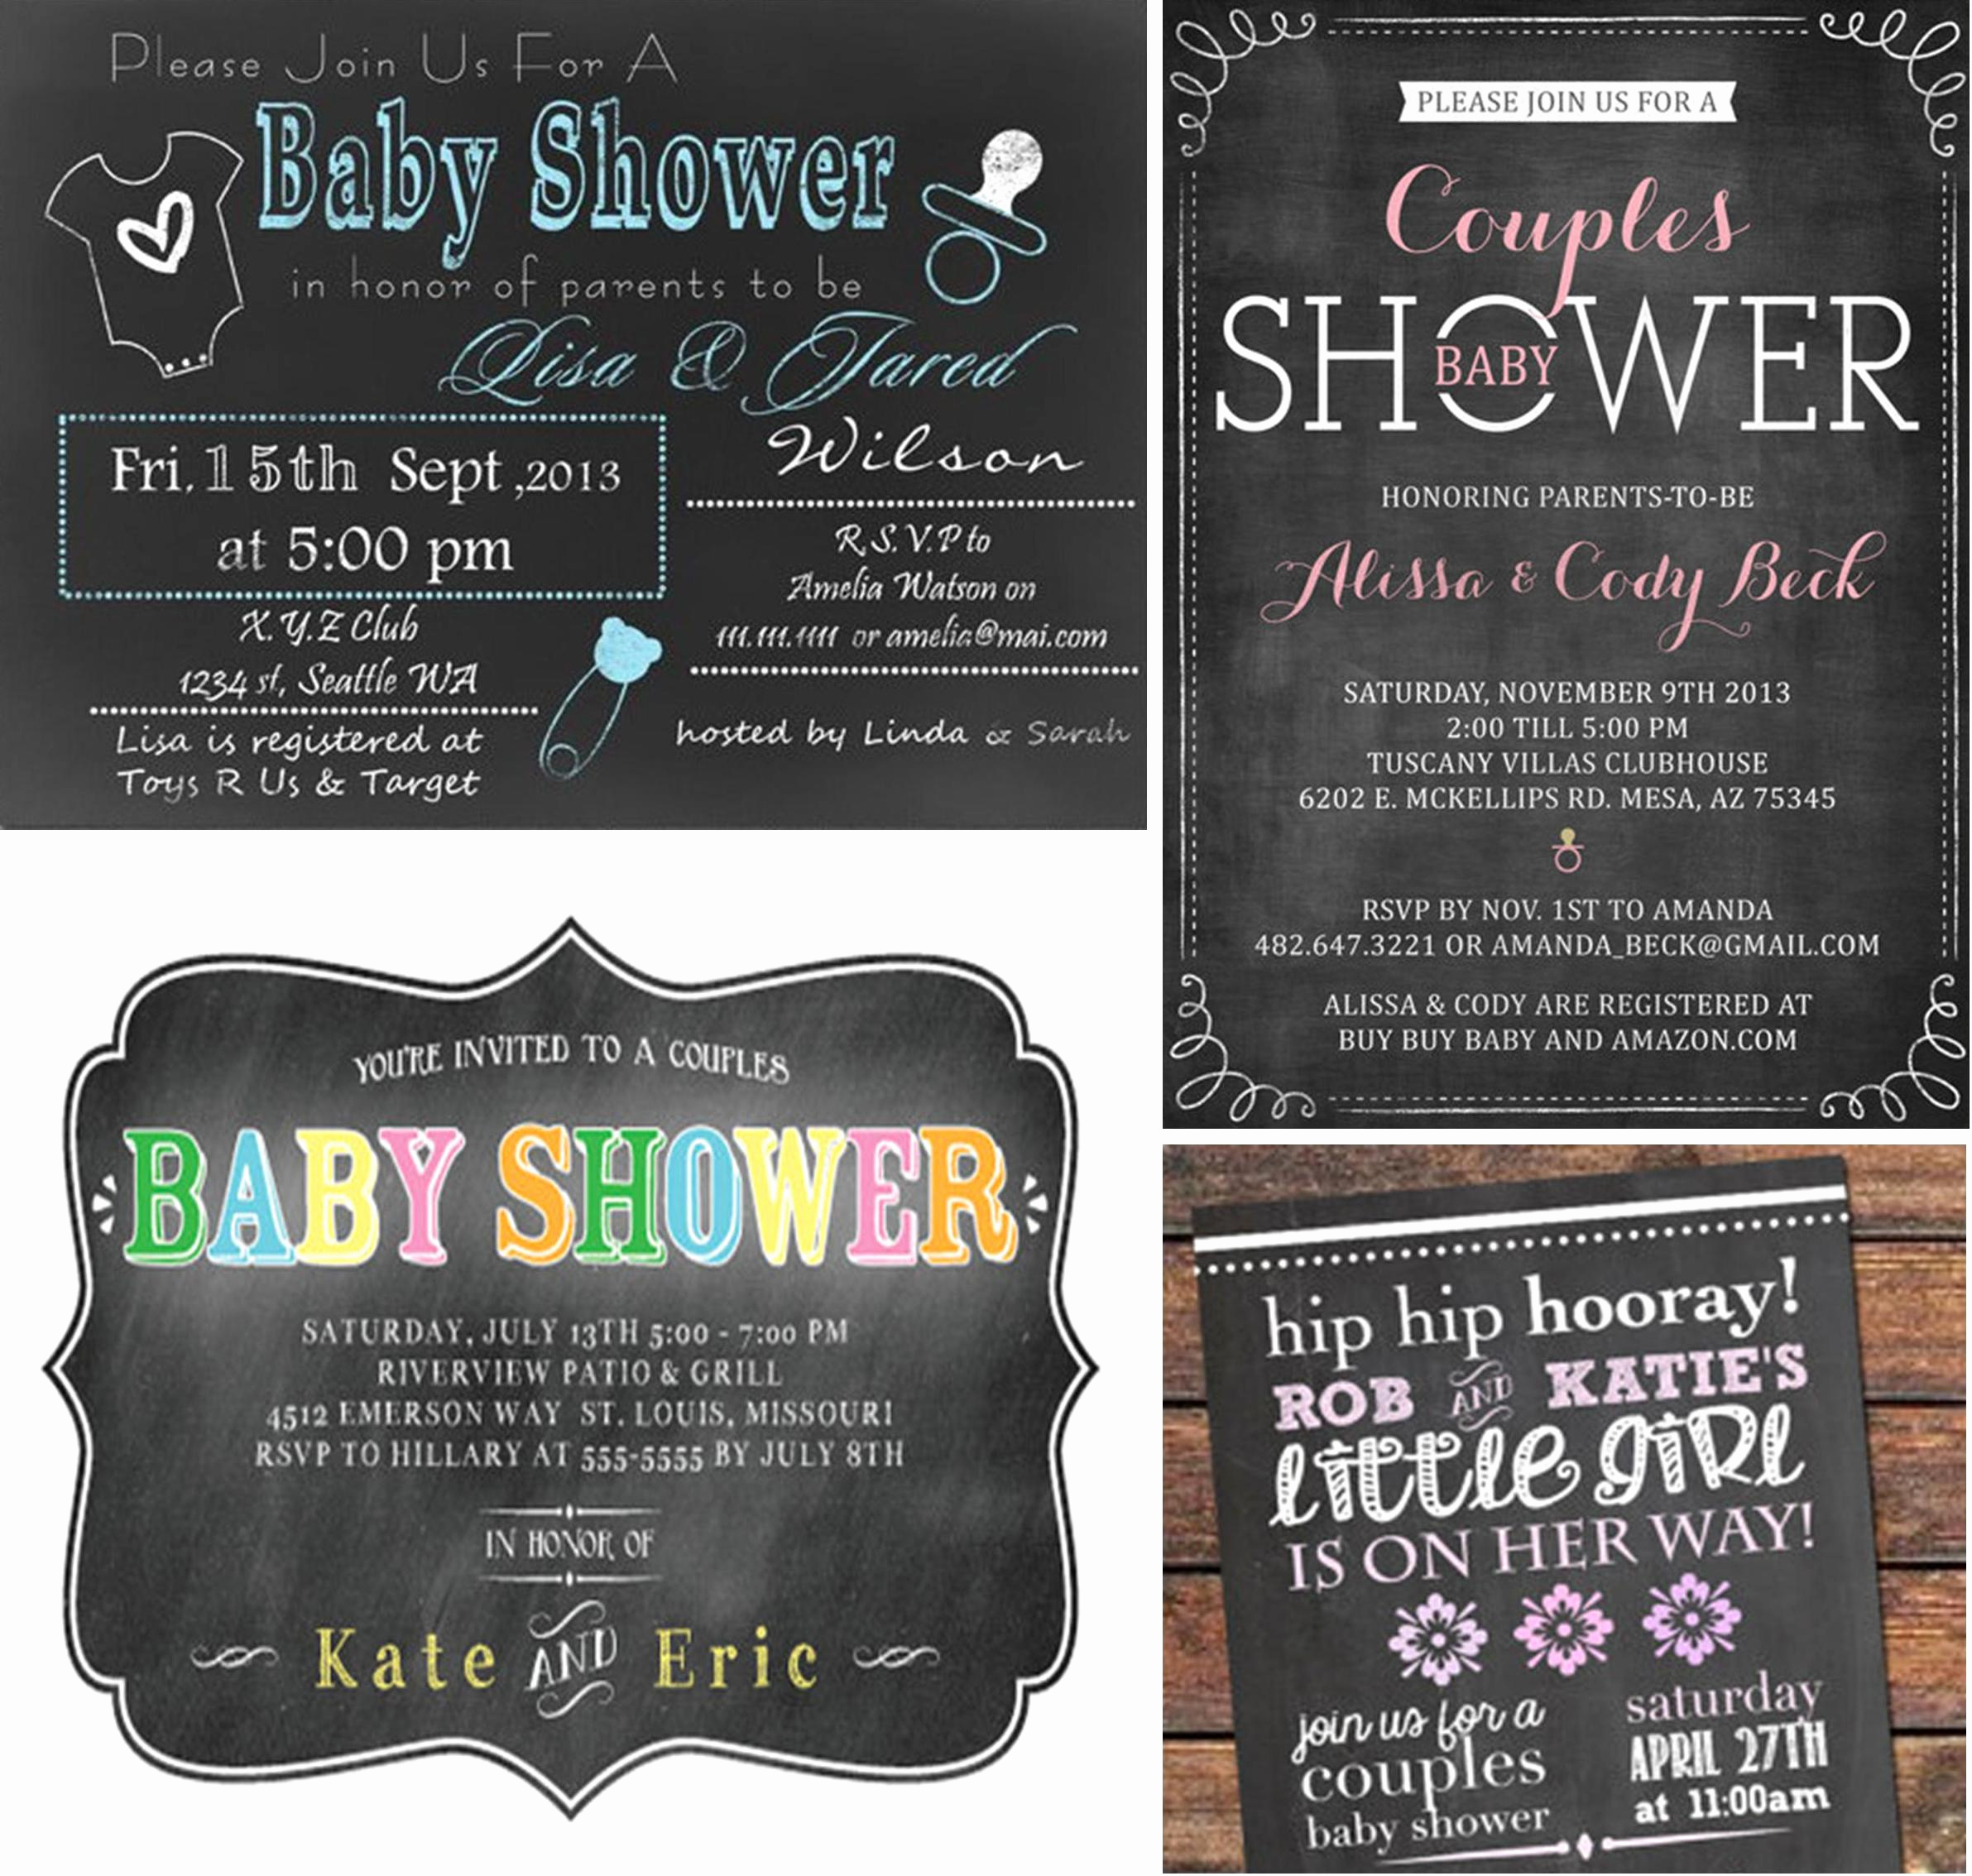 Couples Baby Shower Invitation Wording New Plan A Couples' Baby Shower even the Guys Will Love